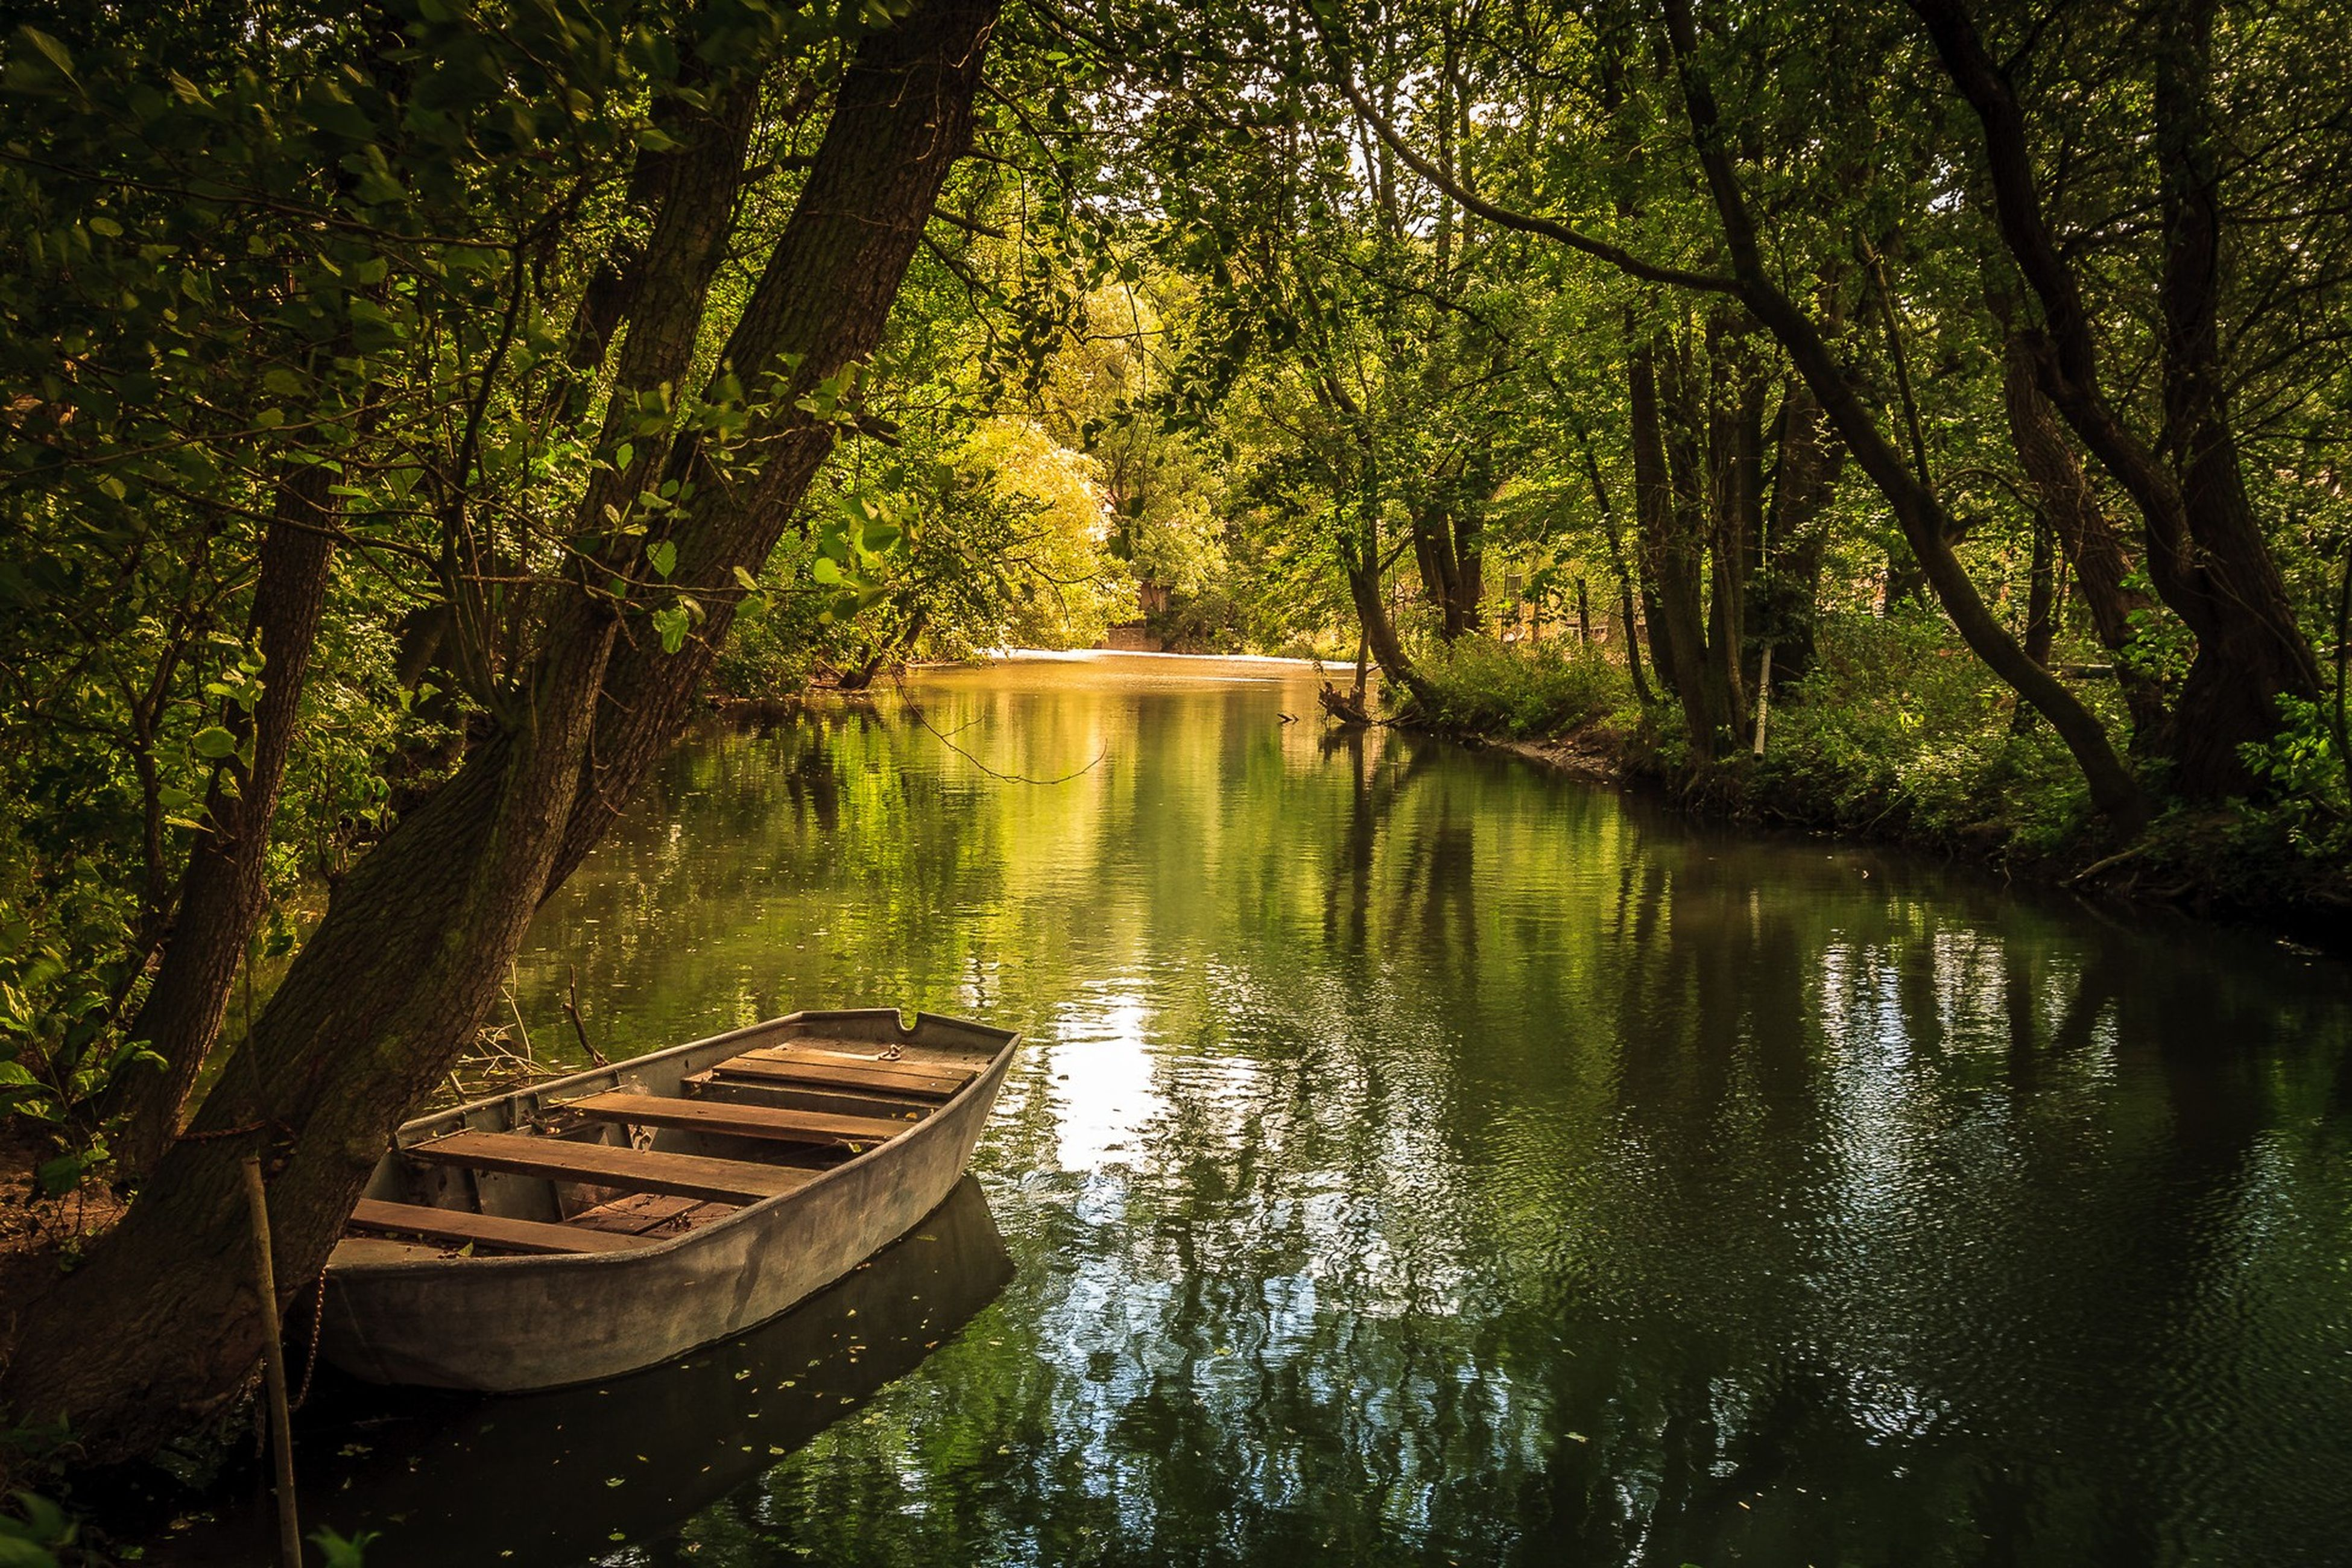 tree, water, tranquility, reflection, tranquil scene, nature, forest, beauty in nature, growth, lake, branch, scenics, green color, transportation, river, idyllic, day, outdoors, boat, nautical vessel